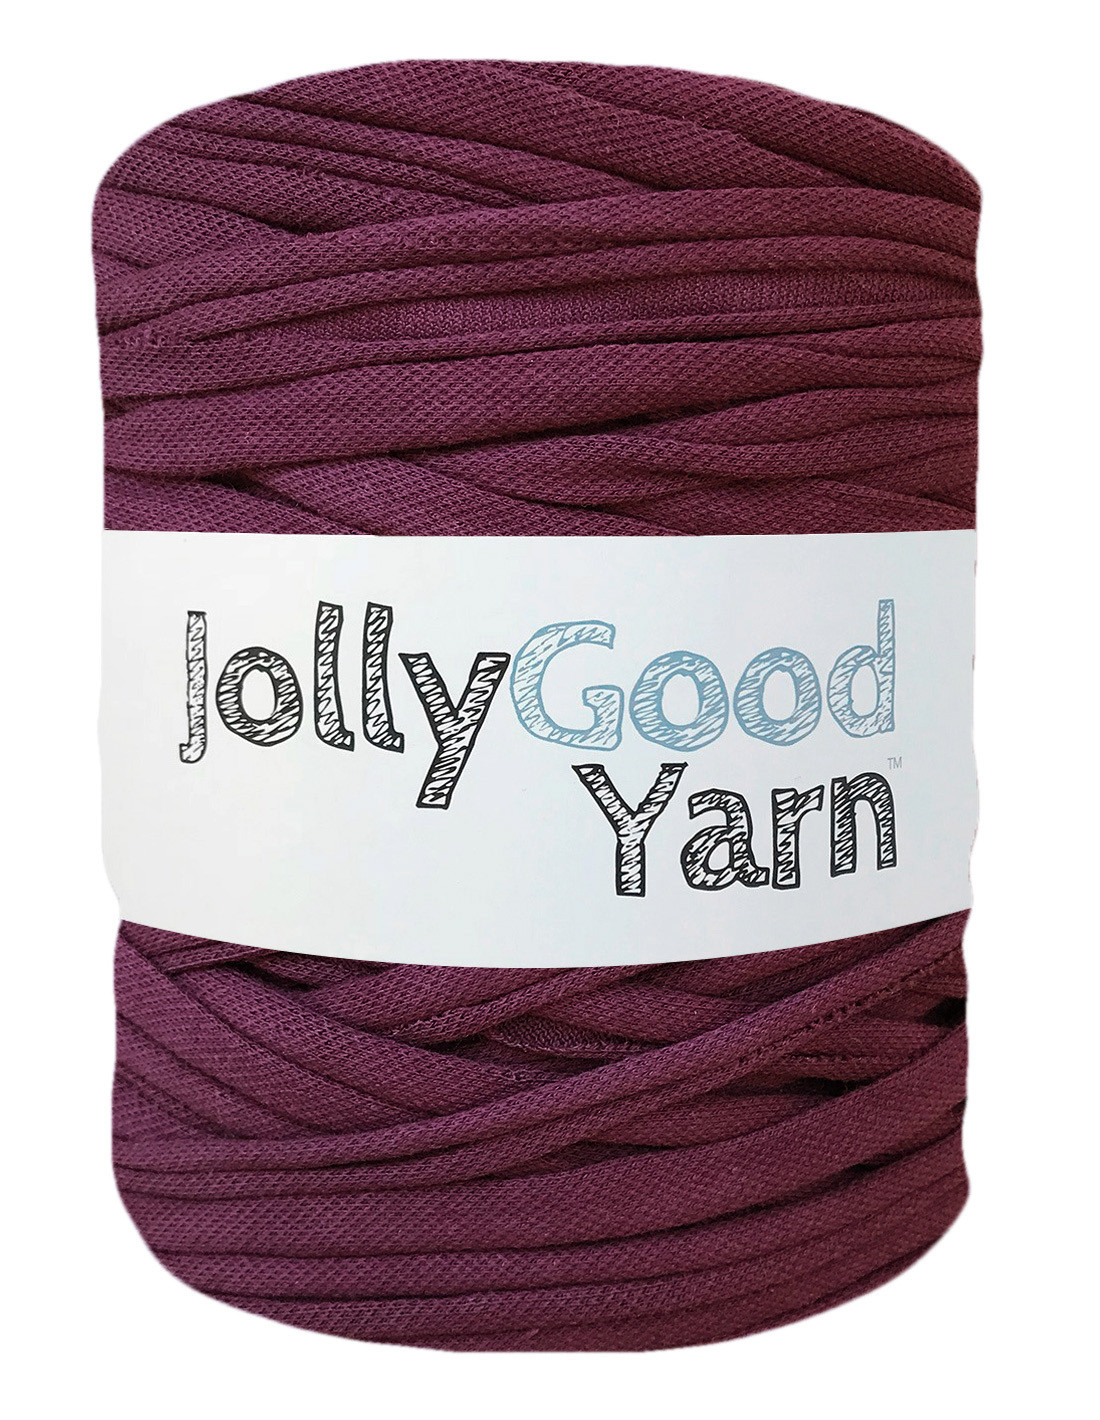 Best Of Polar Bear Print Jolly Good Yarn T Shirt Crochet Yarn Yarn Outlet Of Amazing 50 Photos Yarn Outlet